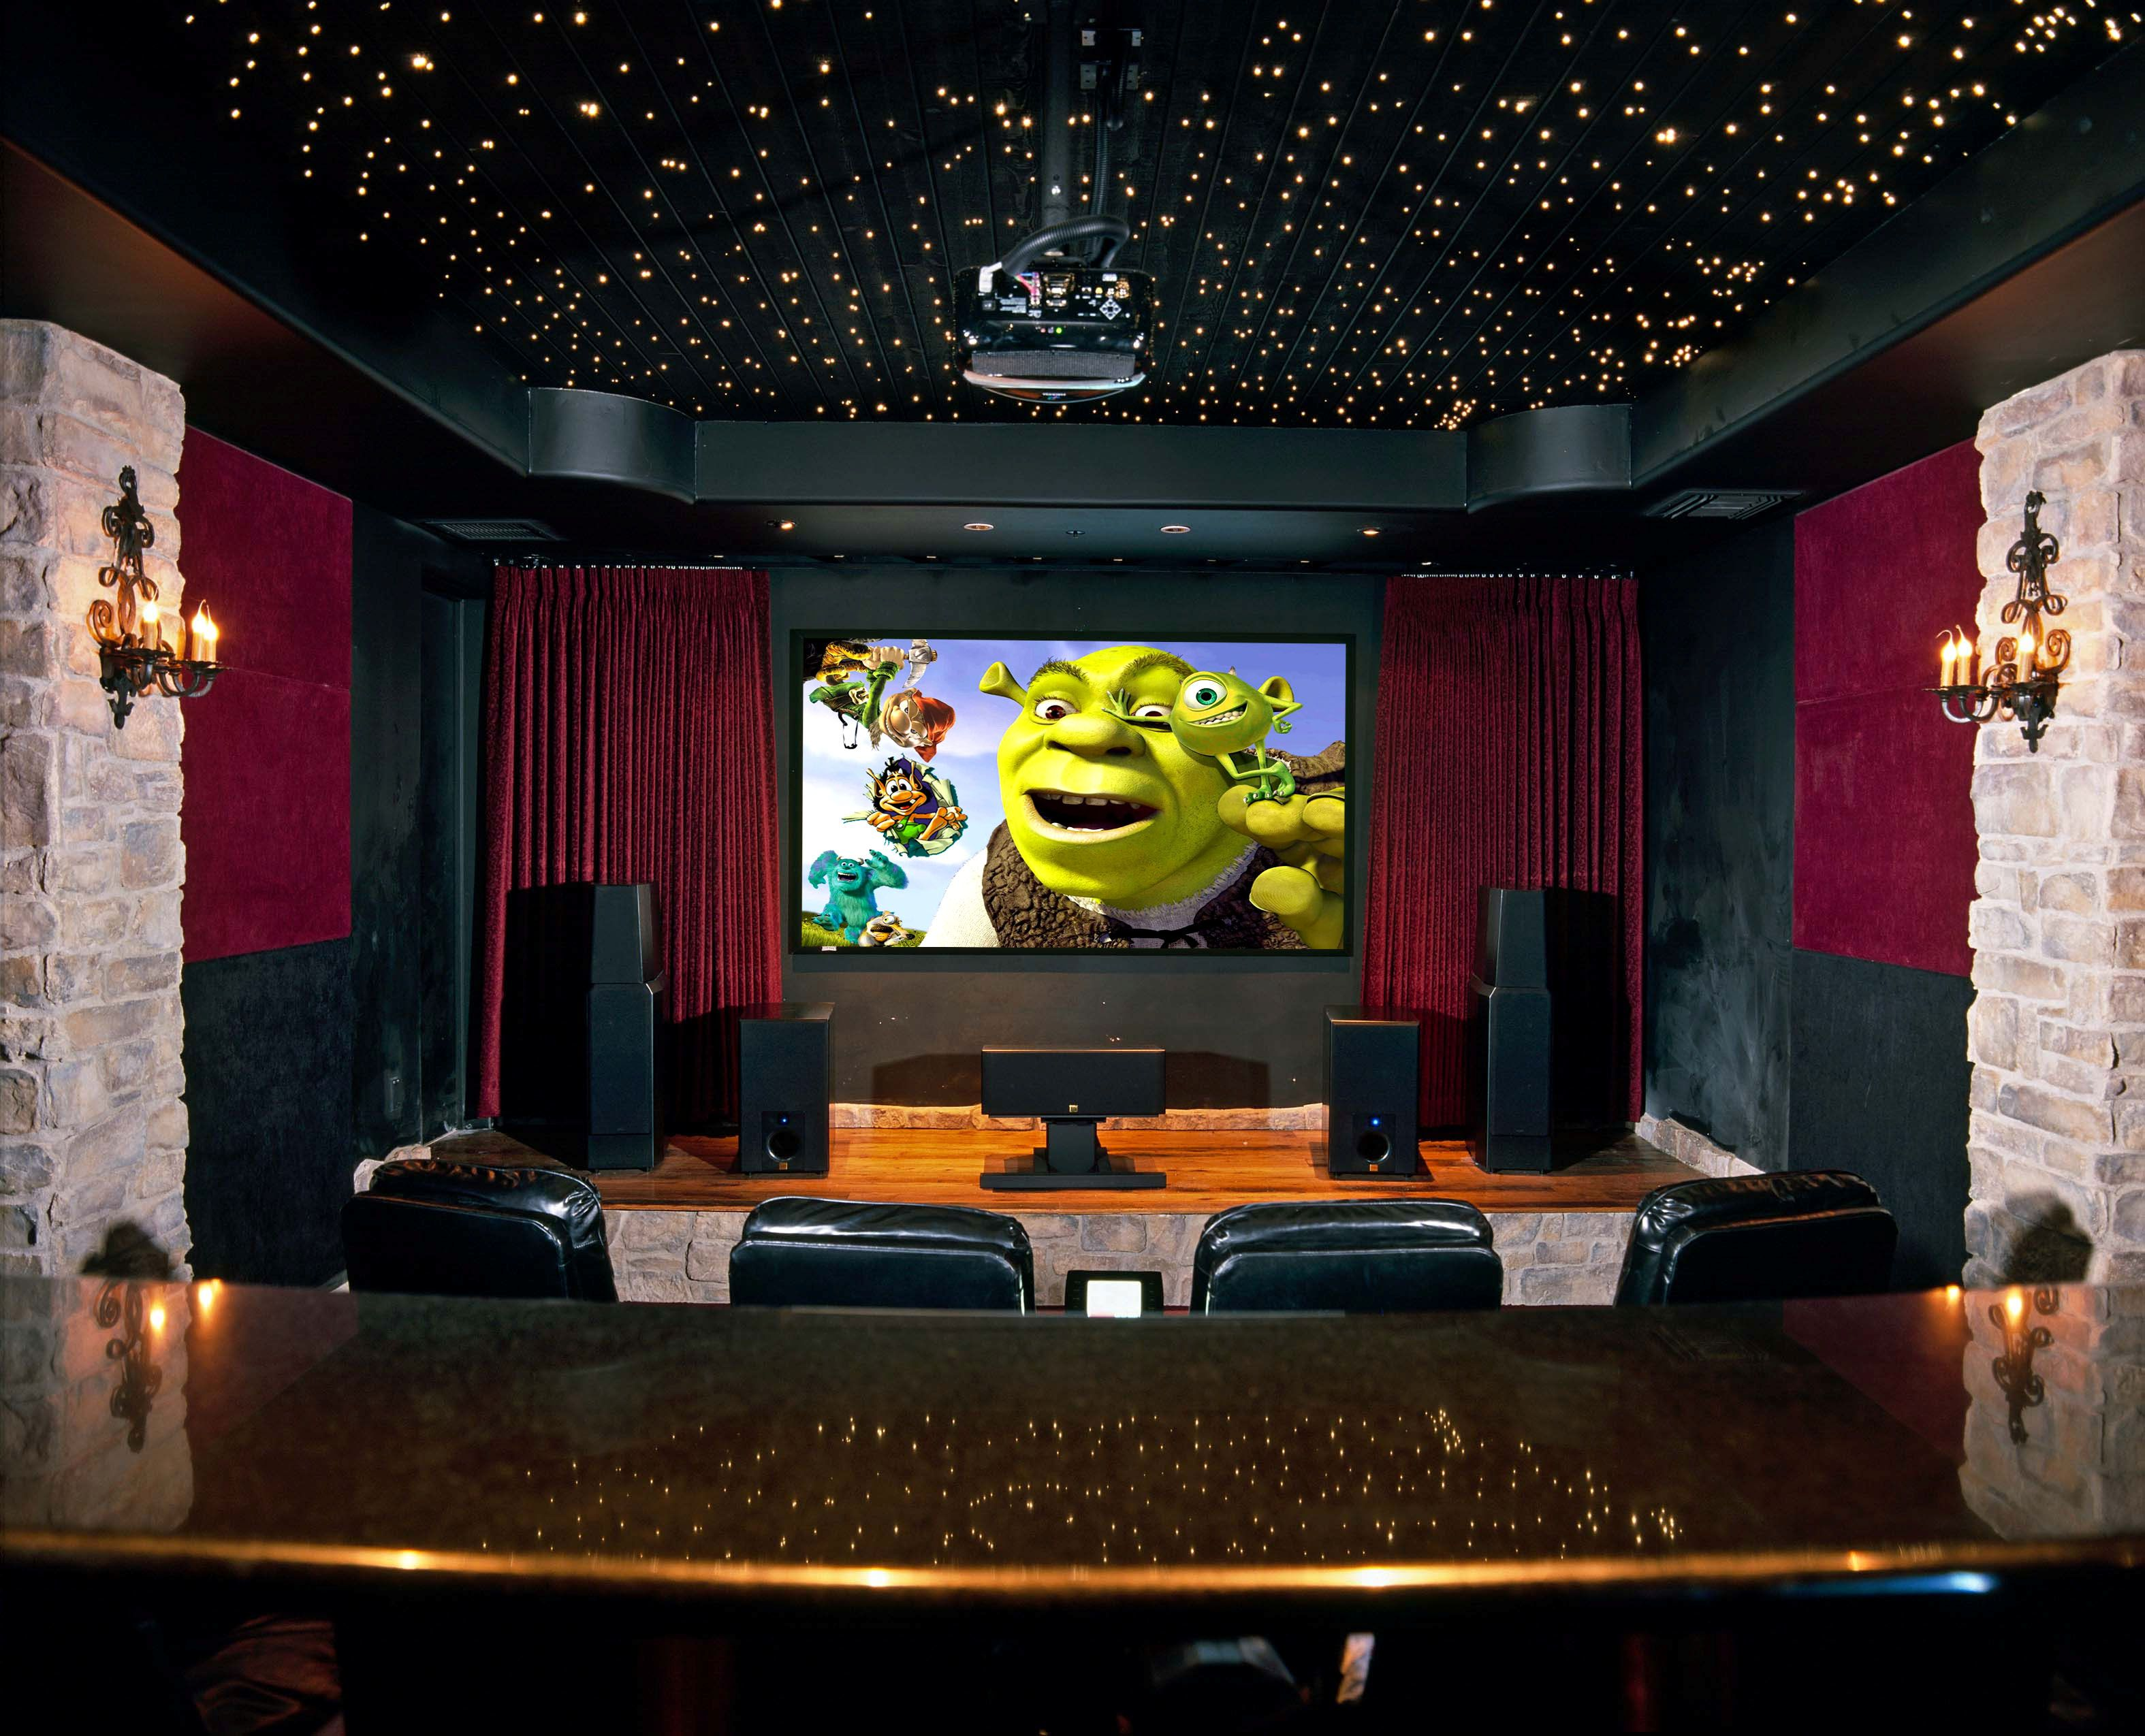 Home Theatre Design Ideas saveemail Traditional Home Theater With Starry Night Sky Lighting